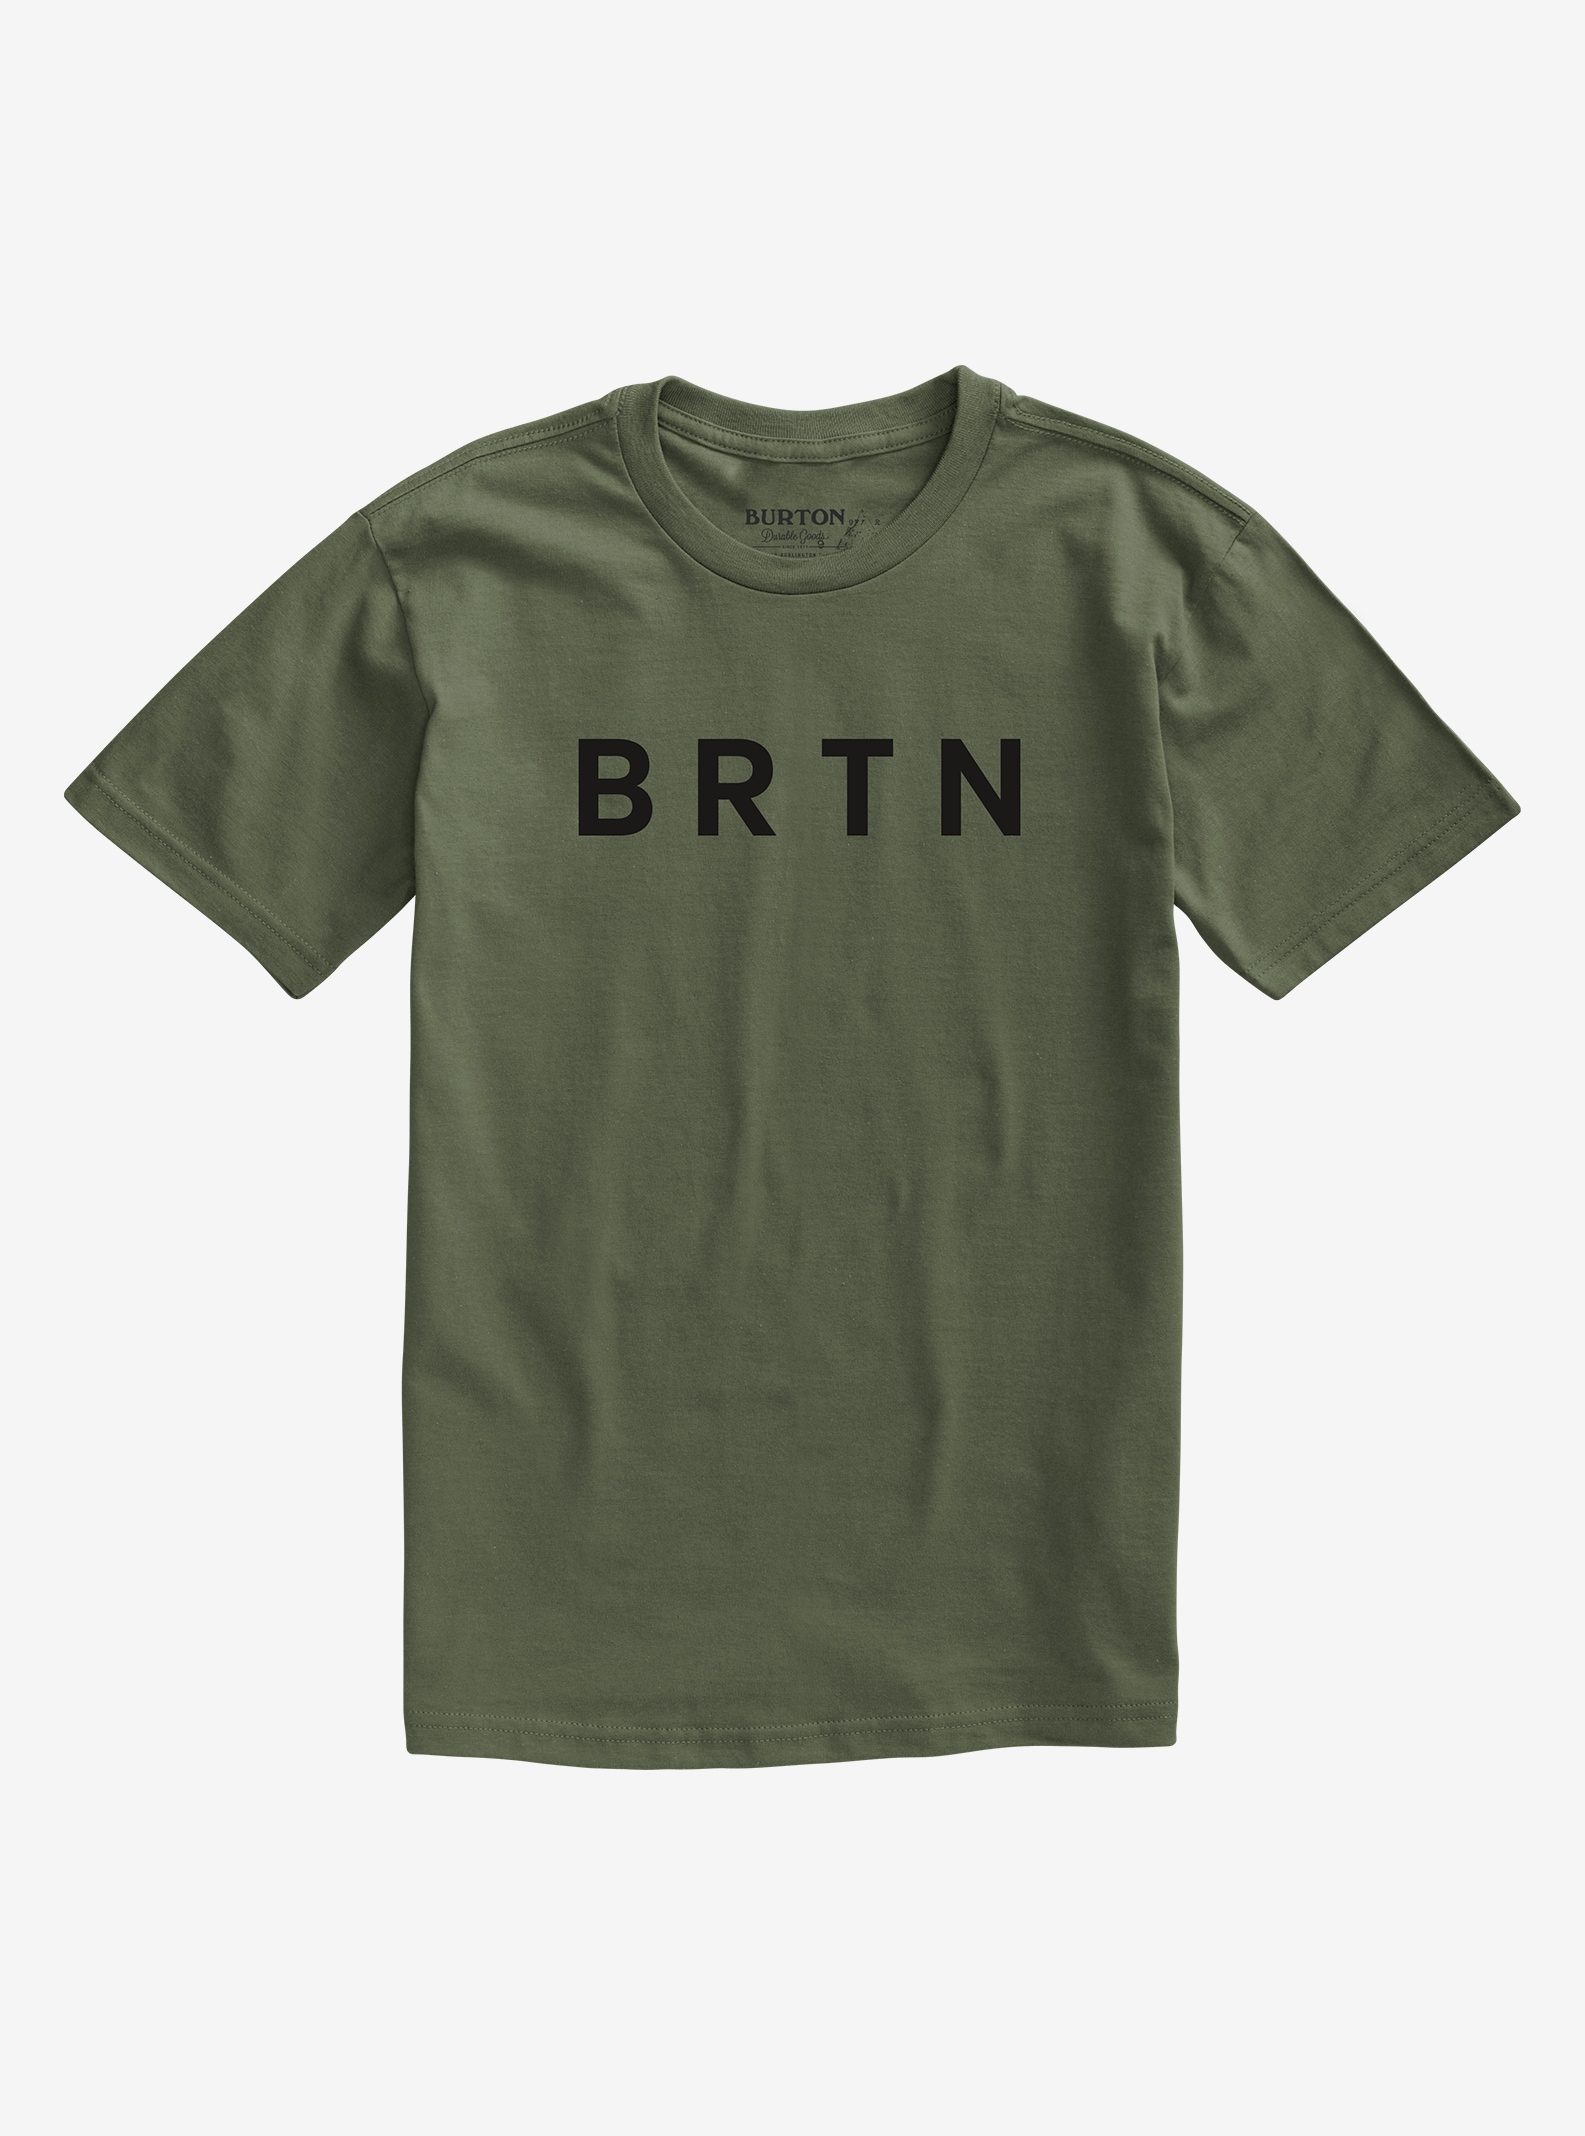 Men's Burton BRTN Short Sleeve T Shirt shown in Dusty Olive